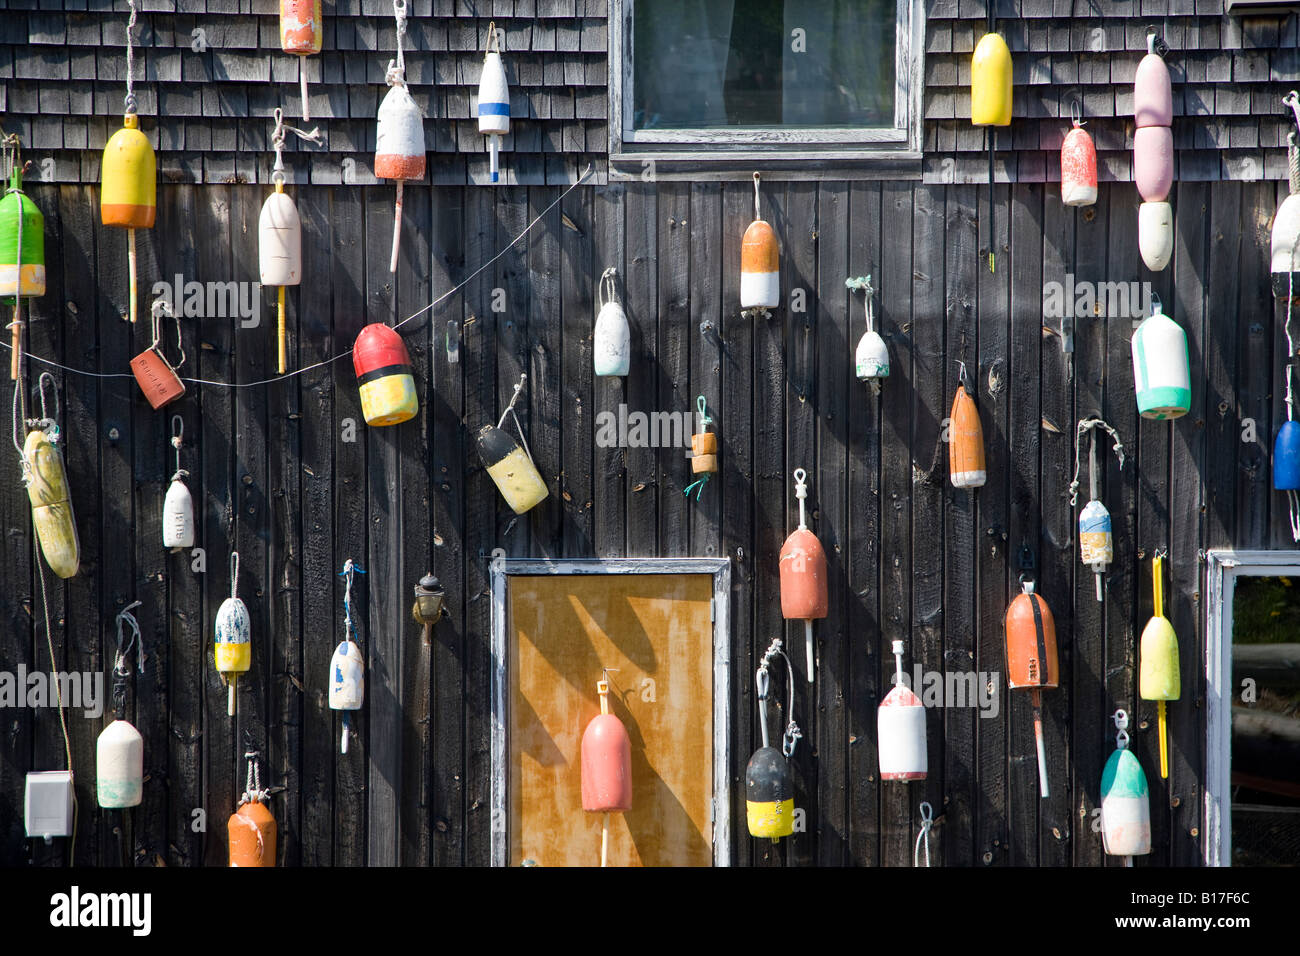 Lobster buoys decorate the Stewman's Downtown restaurant on the city pier, Bar Harbor, Maine, USA - Stock Image